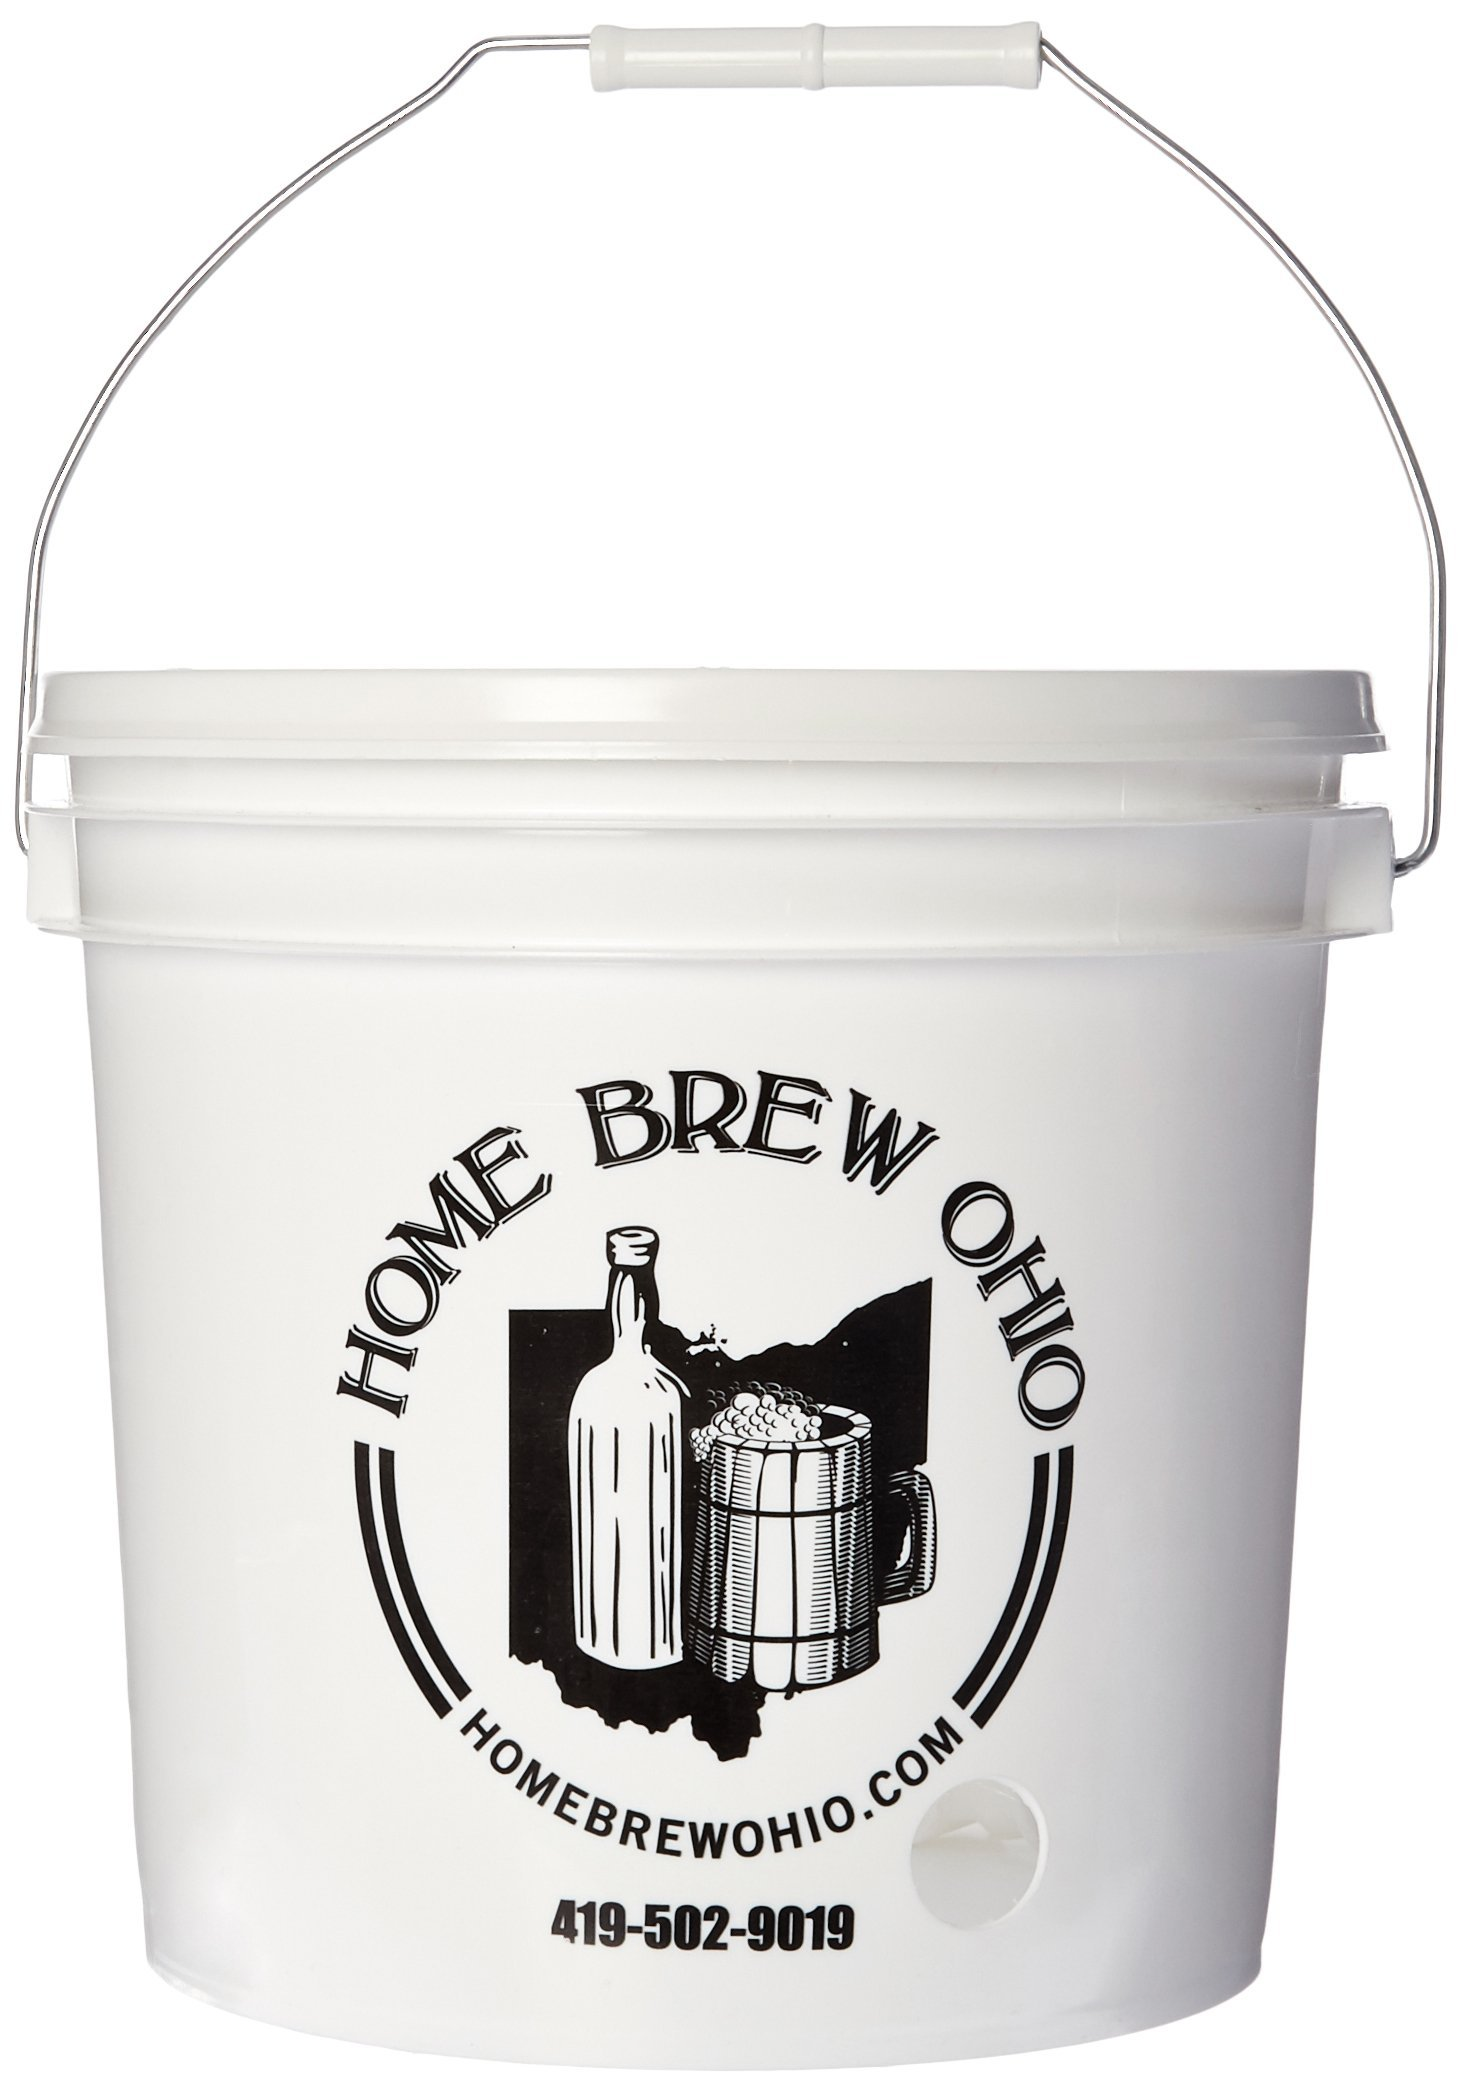 Home Brew Ohio 2 gallon Party Bucket Dispenser